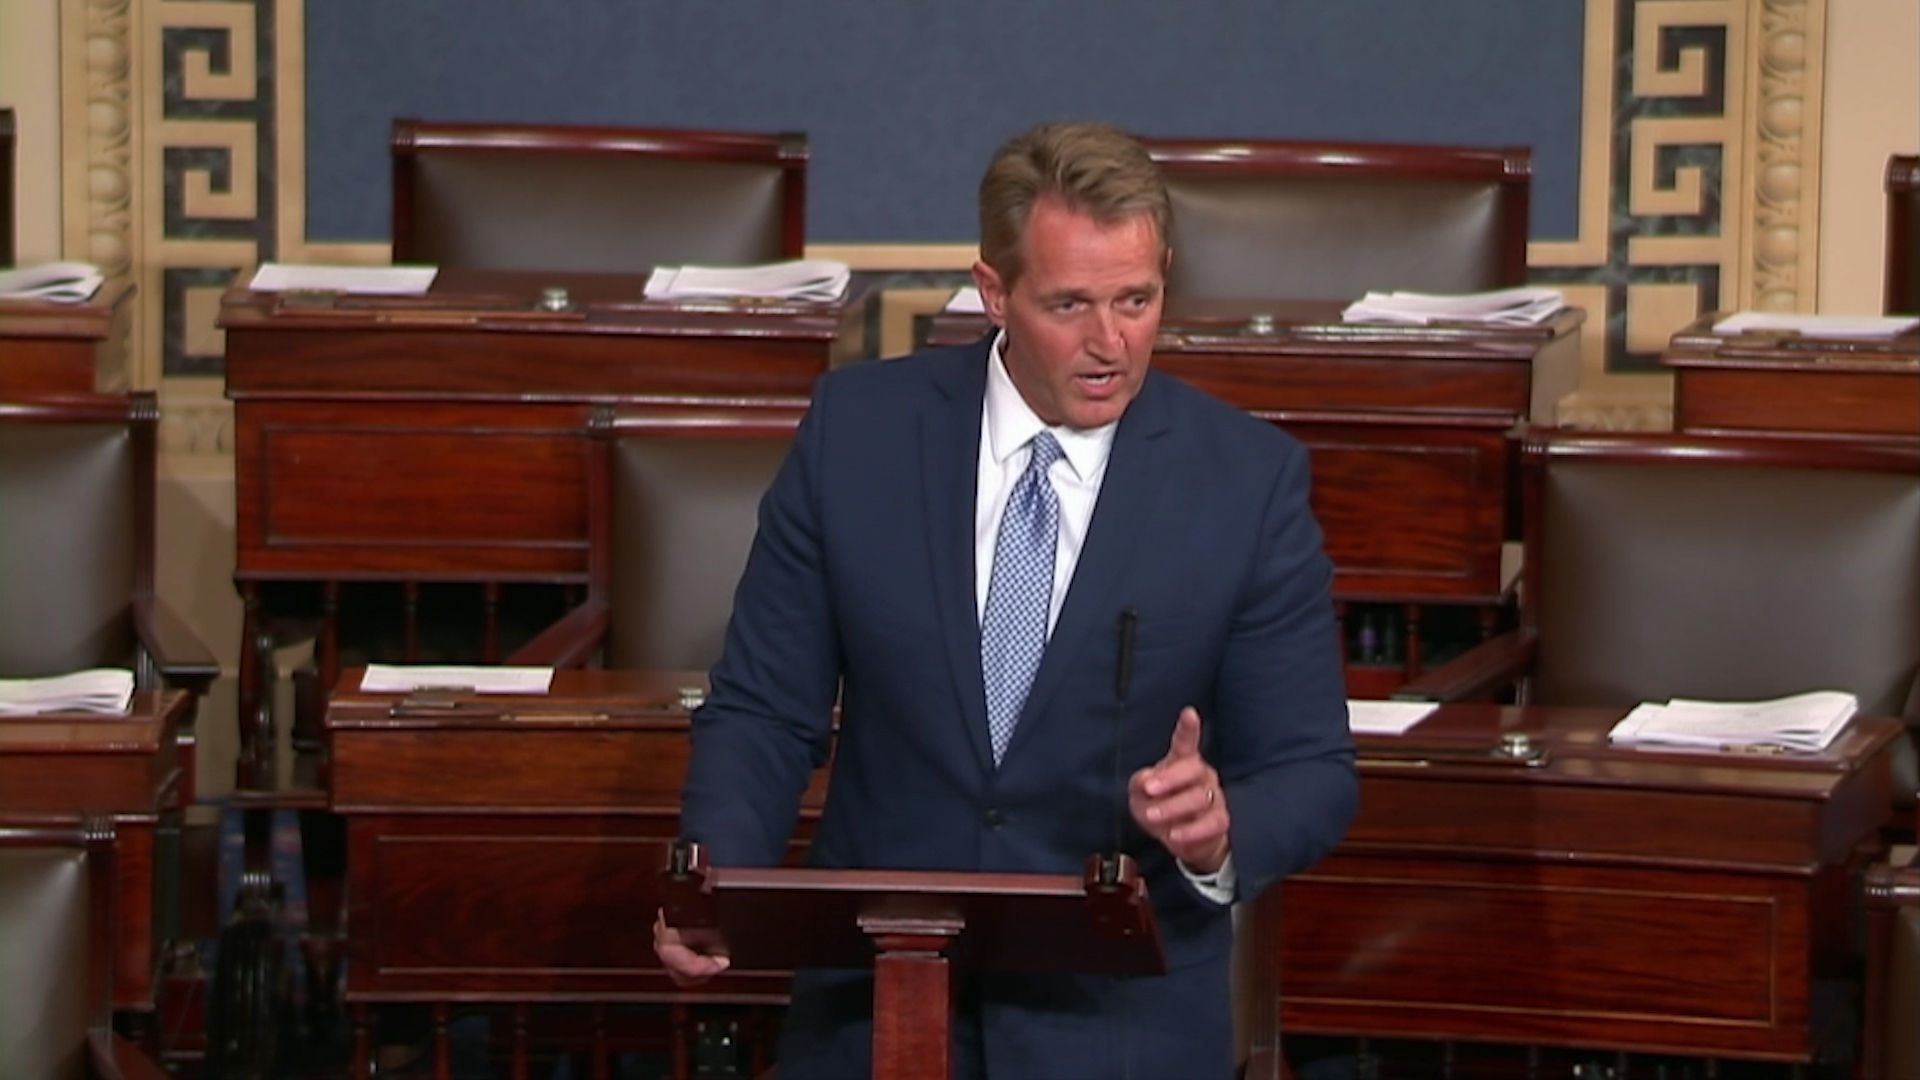 'I will not be complicit.' Jeff Flake's retirement speech, annotated